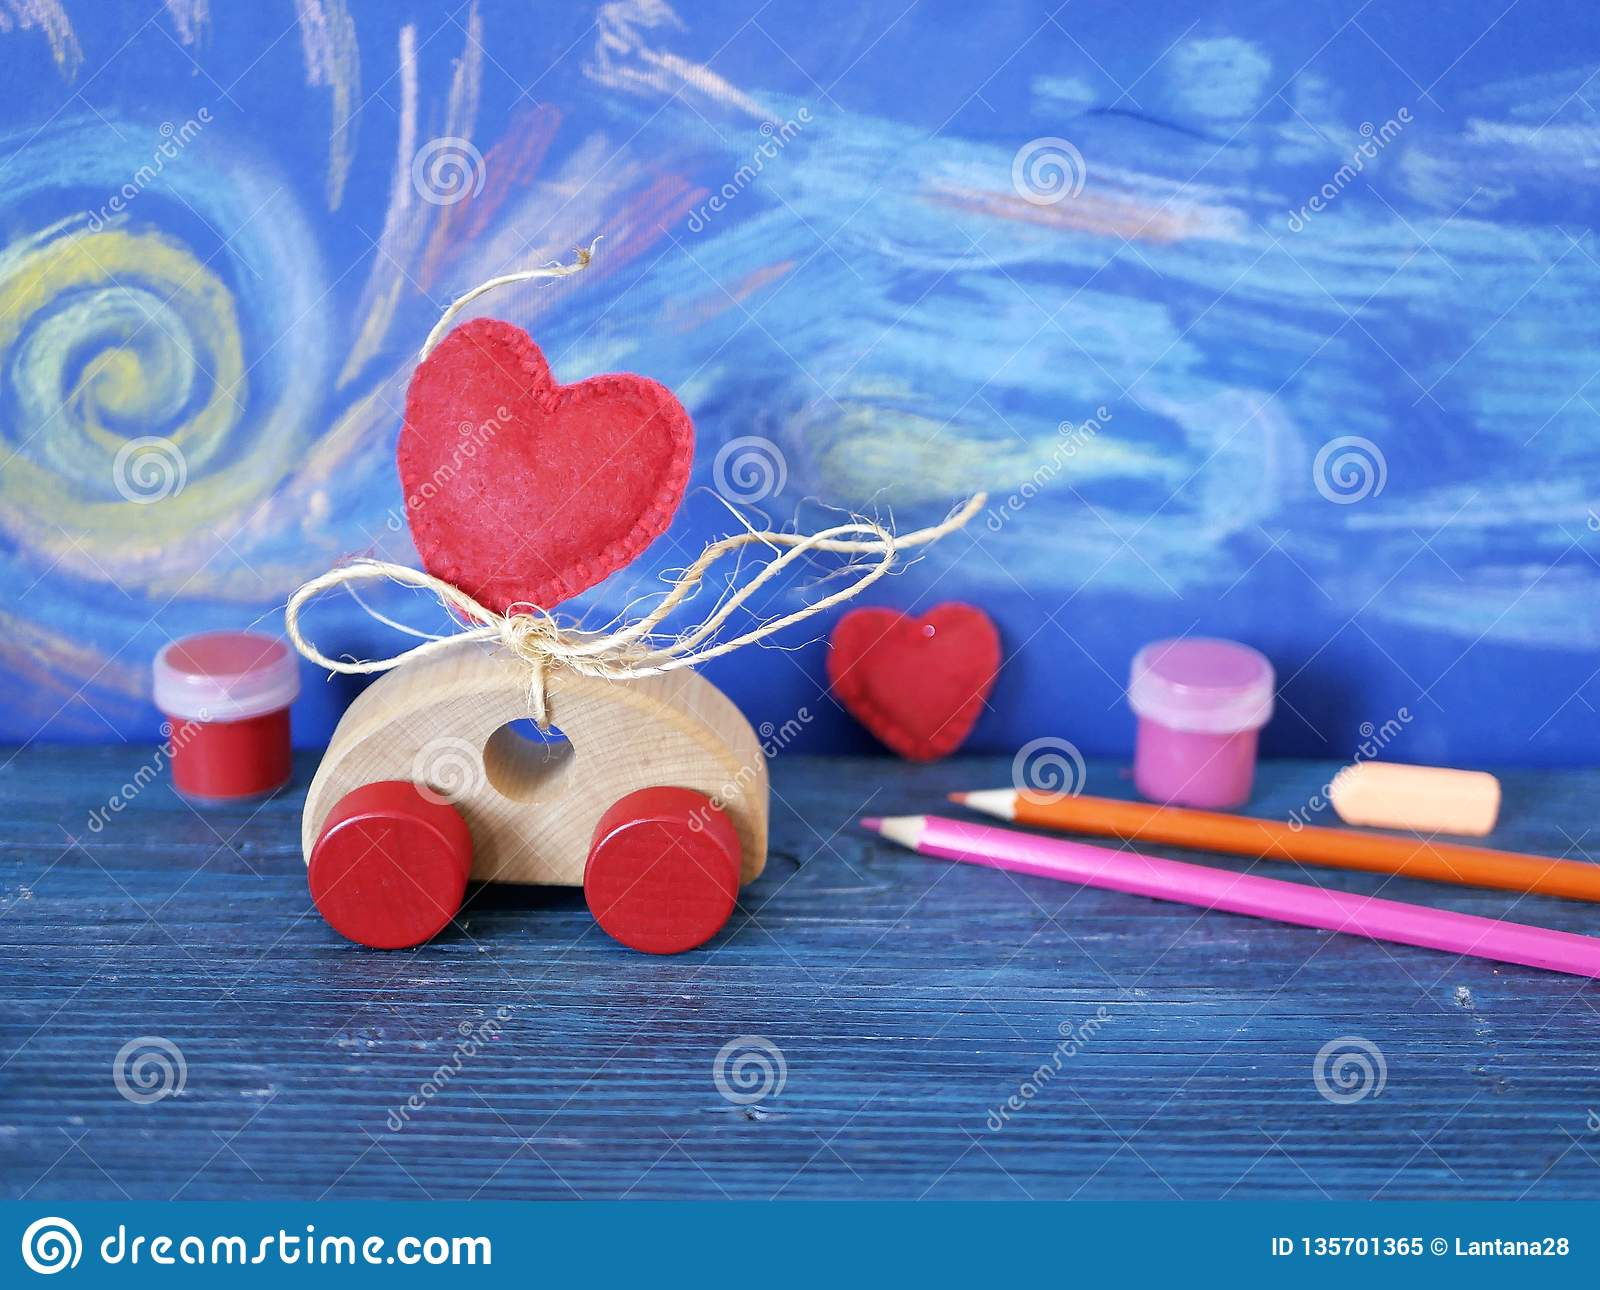 Decorative composition of a toy car and a heart made of felt, paints and pencils on the background of pastel drawing, the concept